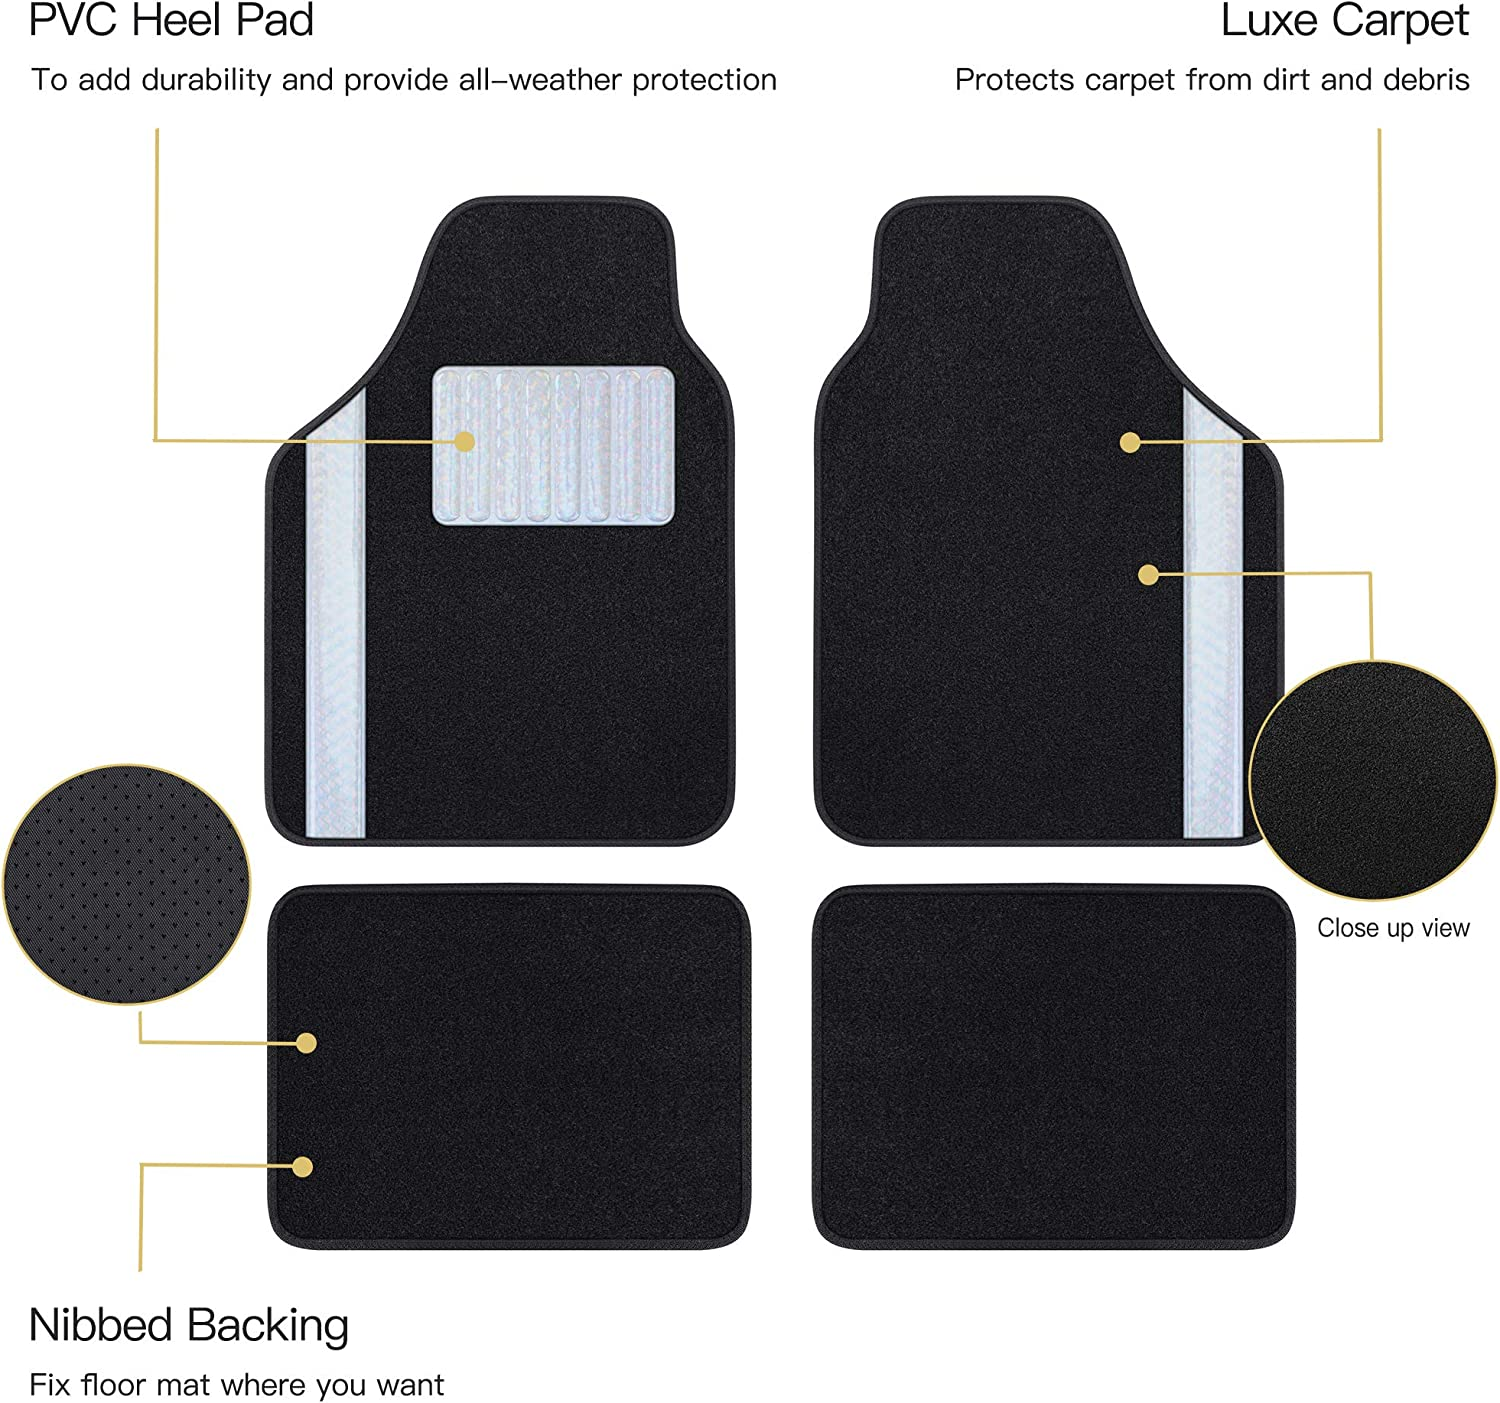 Matdology 4-Piece Universal Fit Luxe Carpet Car Floor Mats with White Flower Heel Pad and Two Decorative Tone Black Heavy Duty Vehicle Interior Floor Mats All Weather Protection